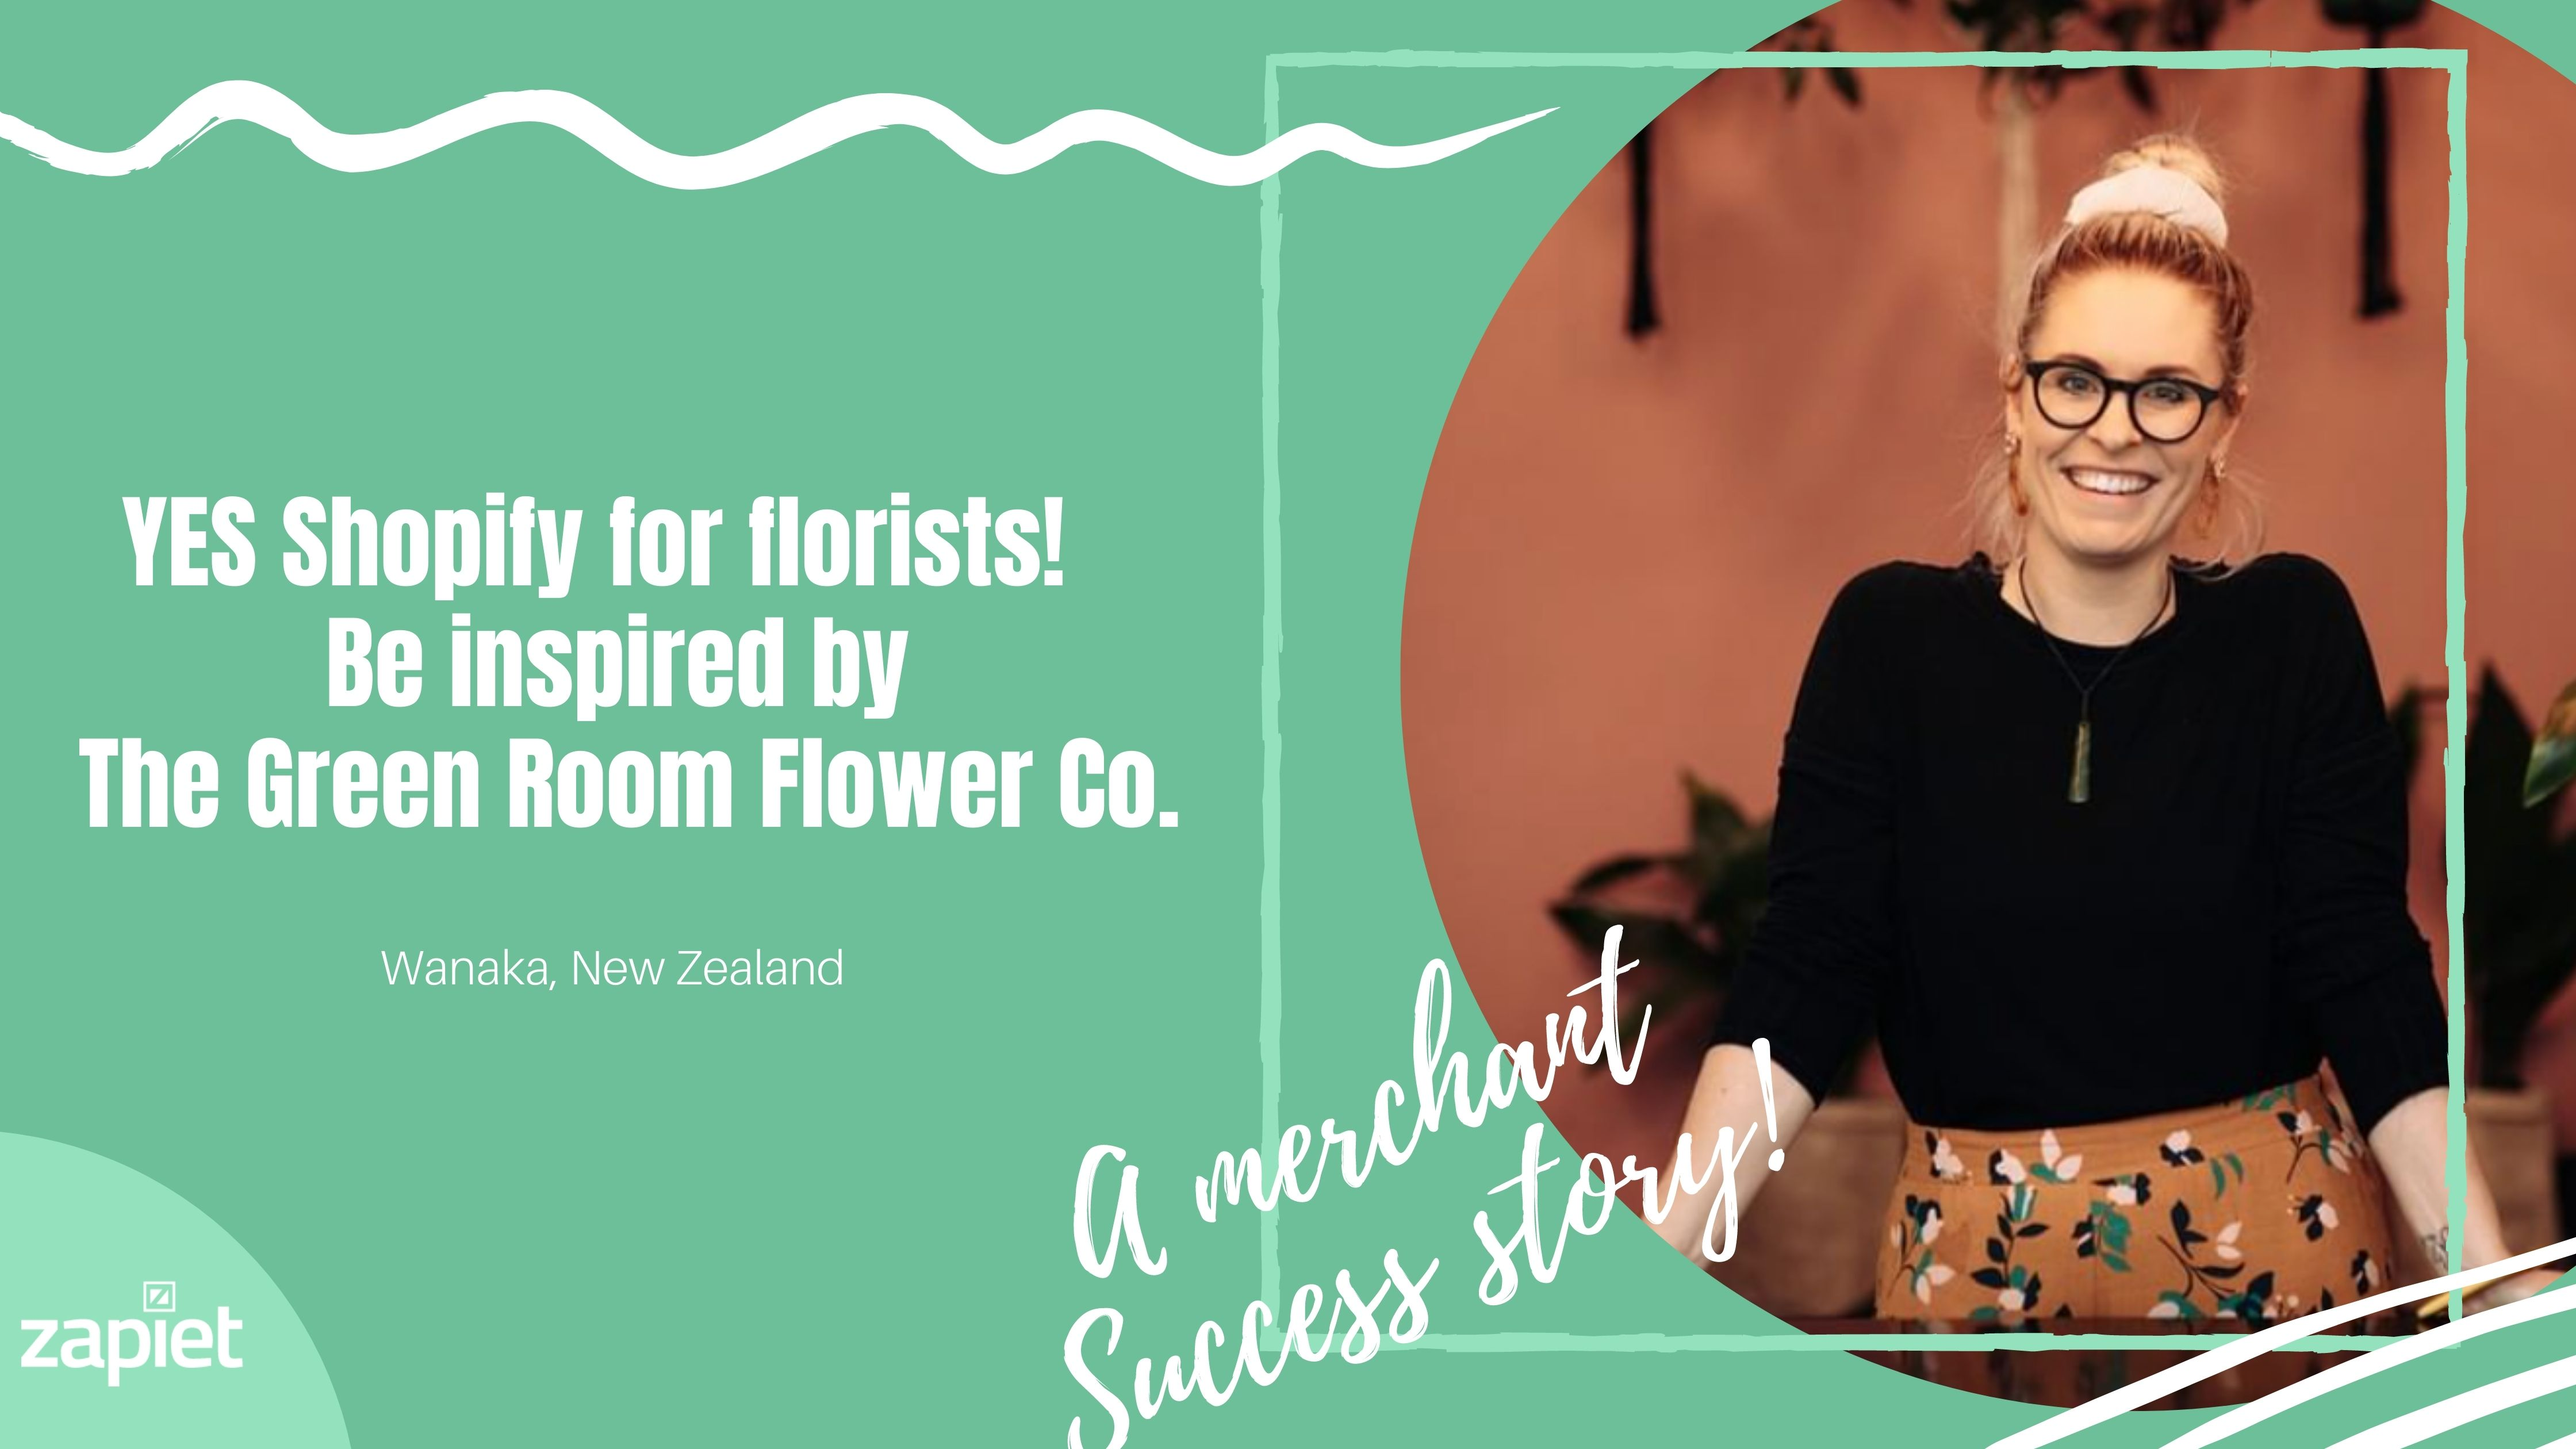 YES Shopify for florists! Be inspired by The Green Room Flower Co